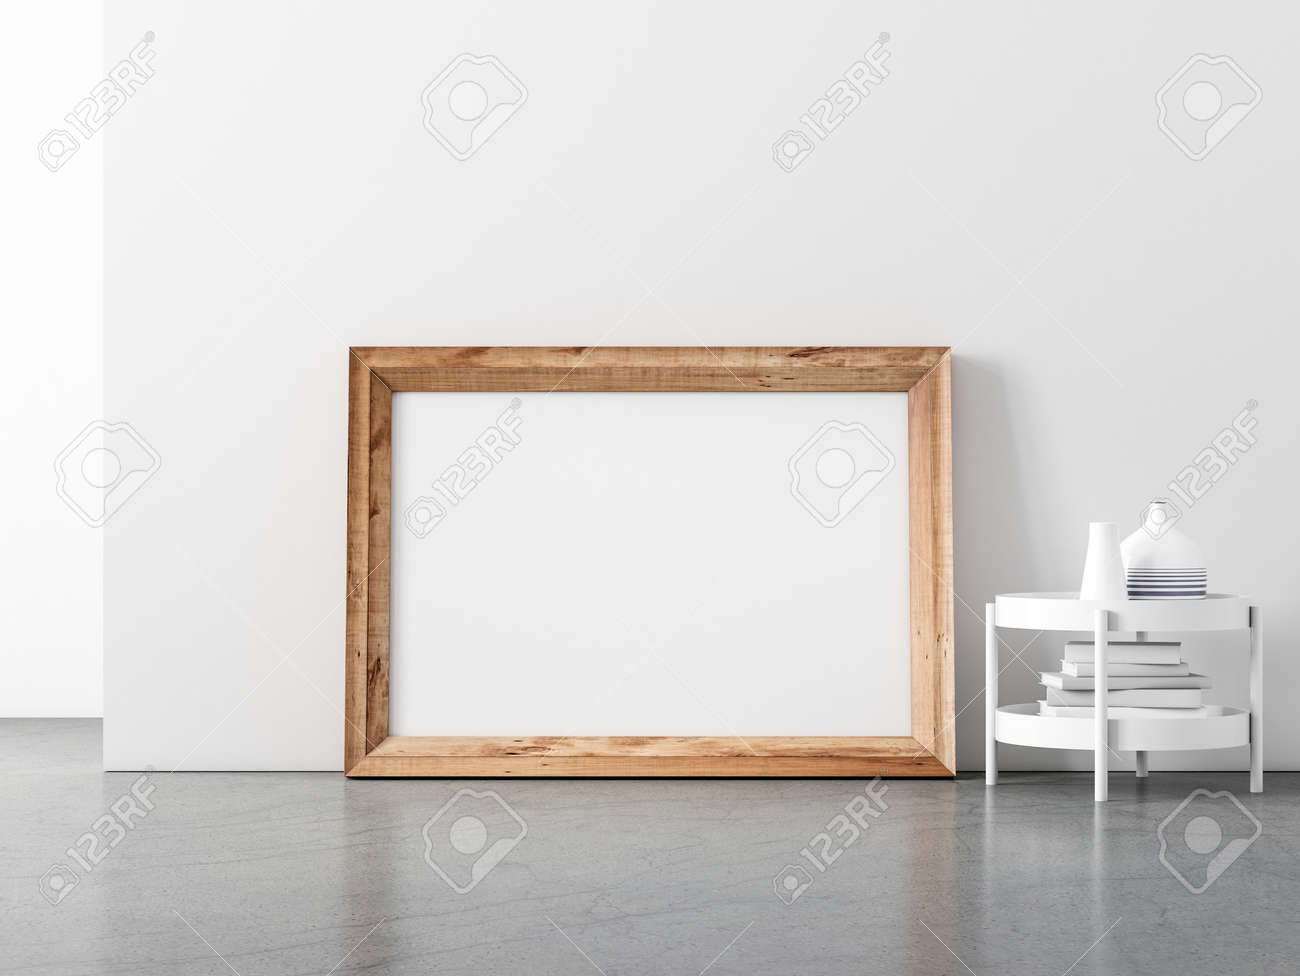 Horizontal Wooden Frame Mockup standing on the floor, for your artwork or poster - 159426792